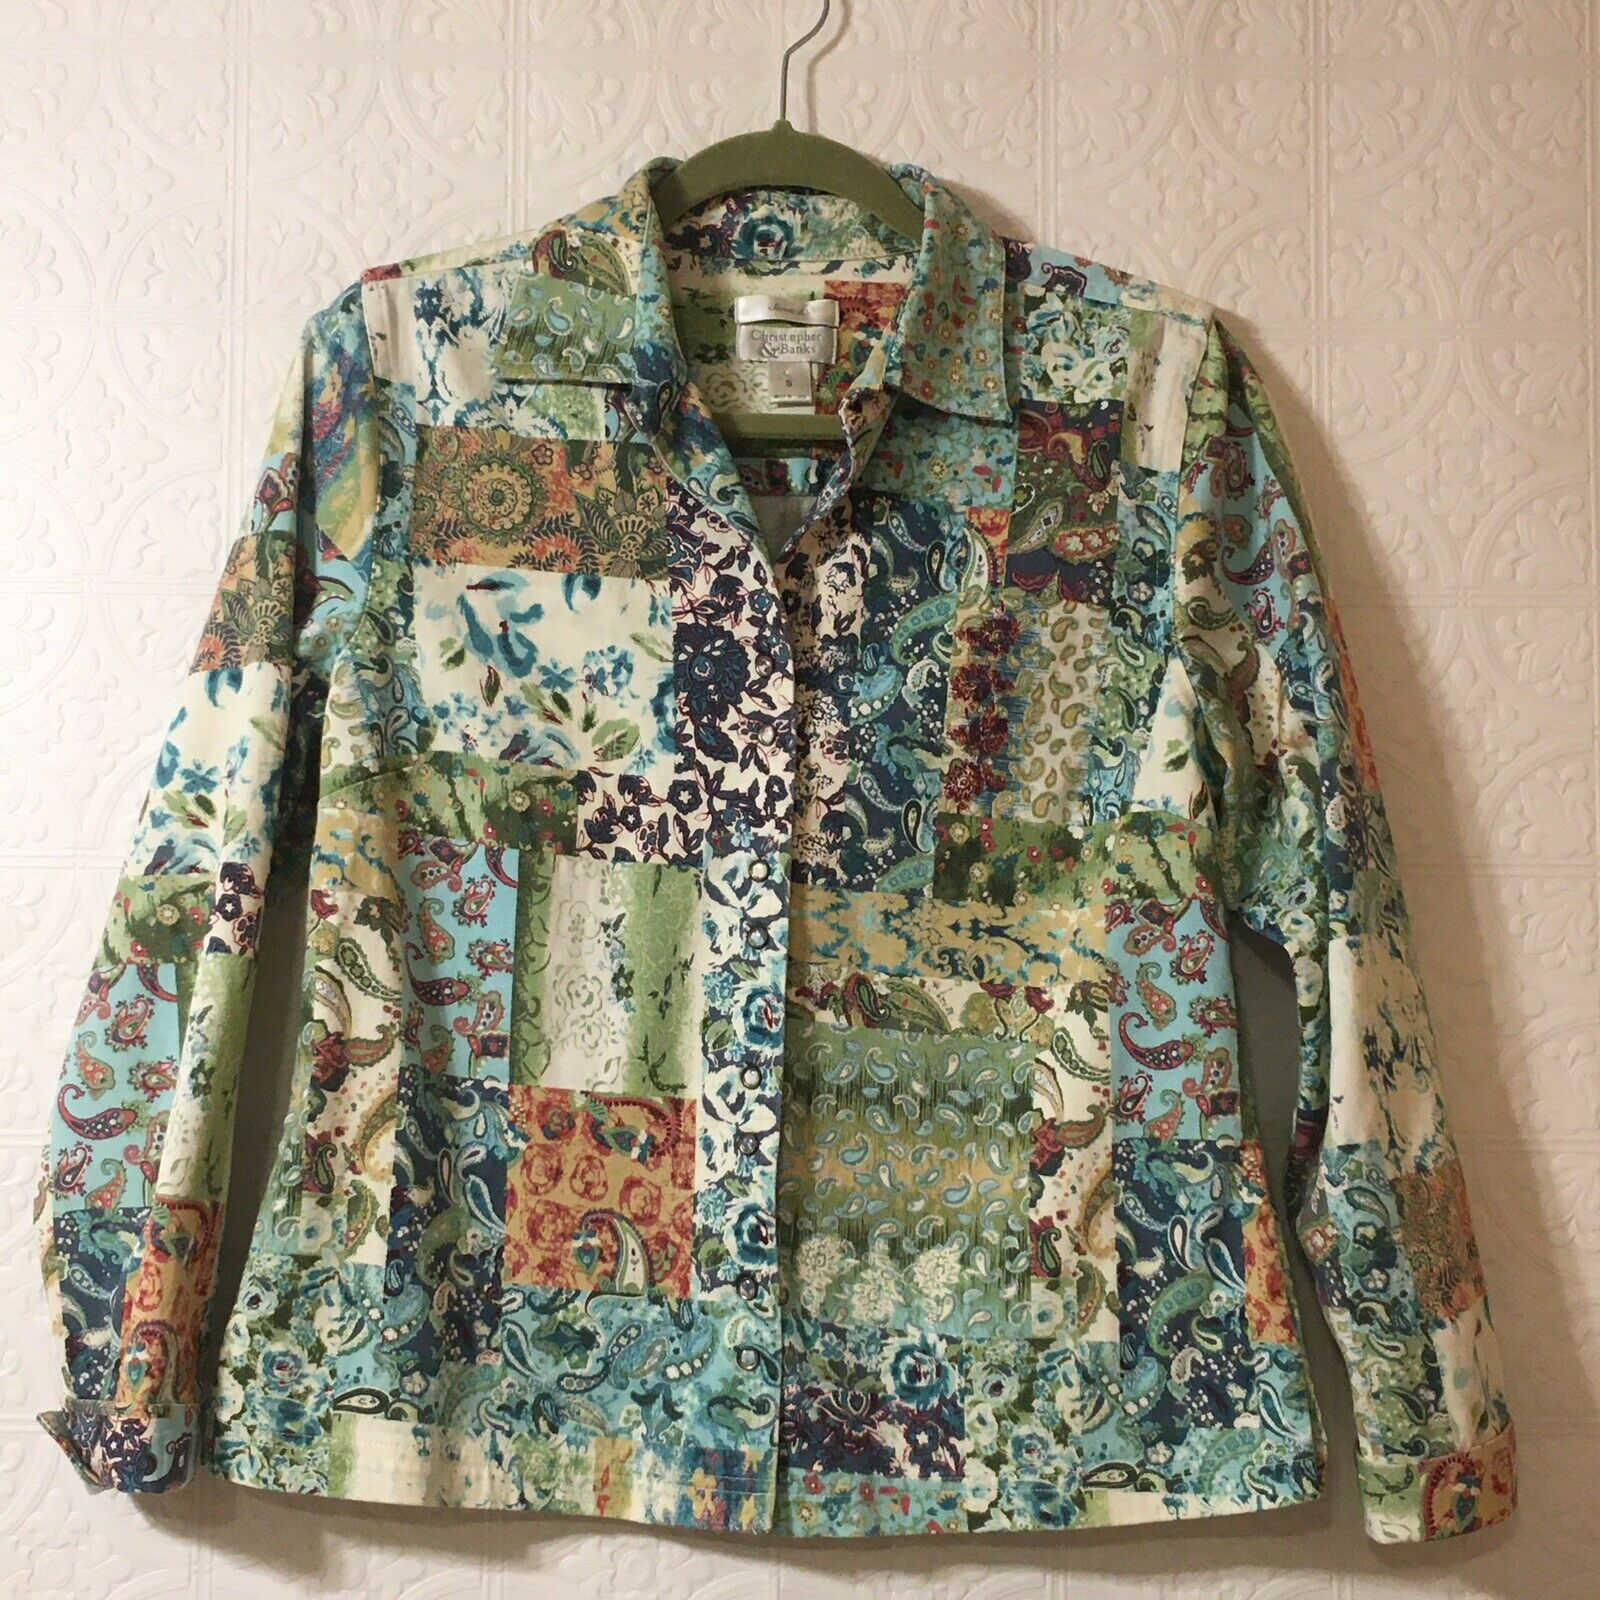 CHRISTOPHER & BANKS Jacket Women's Size Small Pea… - image 11